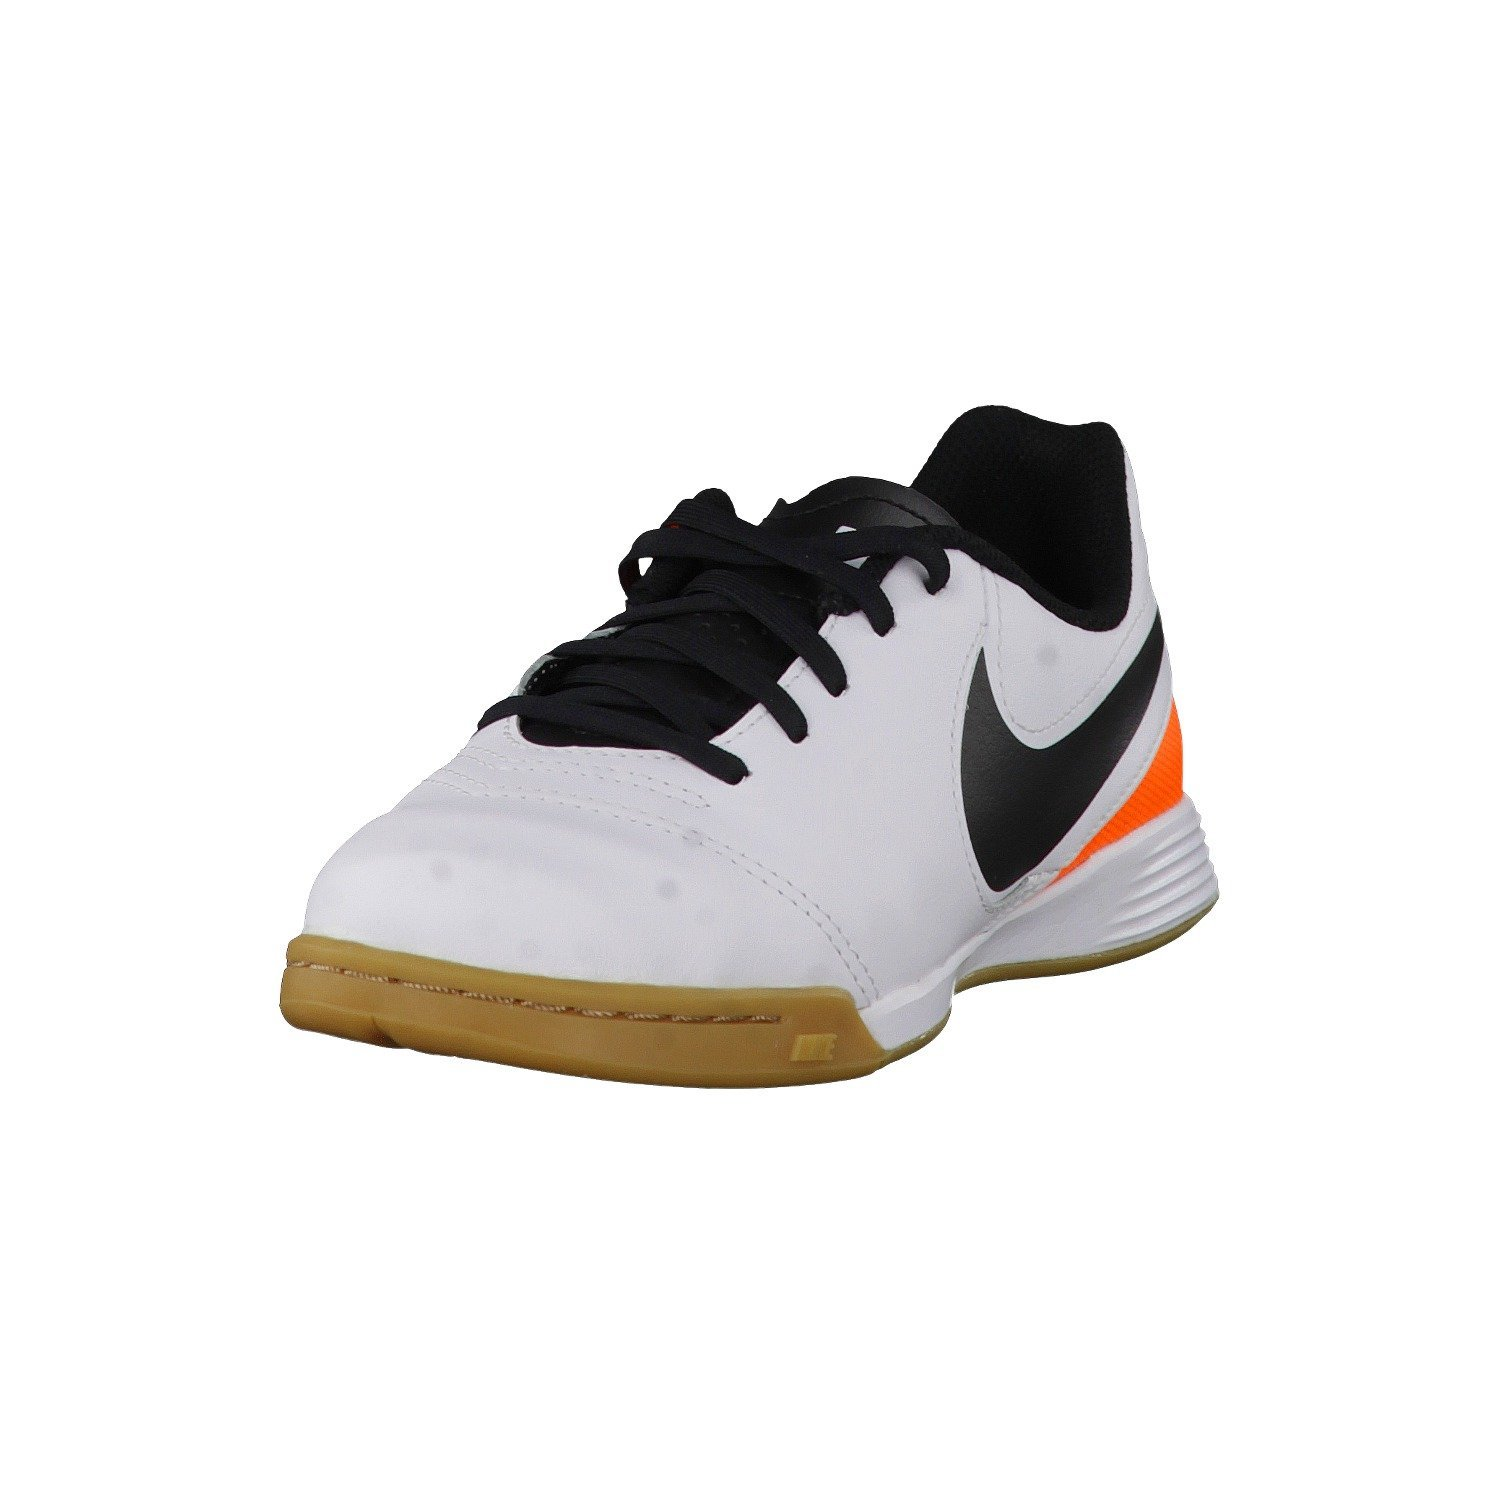 promo code 3e4b3 a0376 Get Quotations · Nike Youth Tiempo Legend VI Indoor Shoes